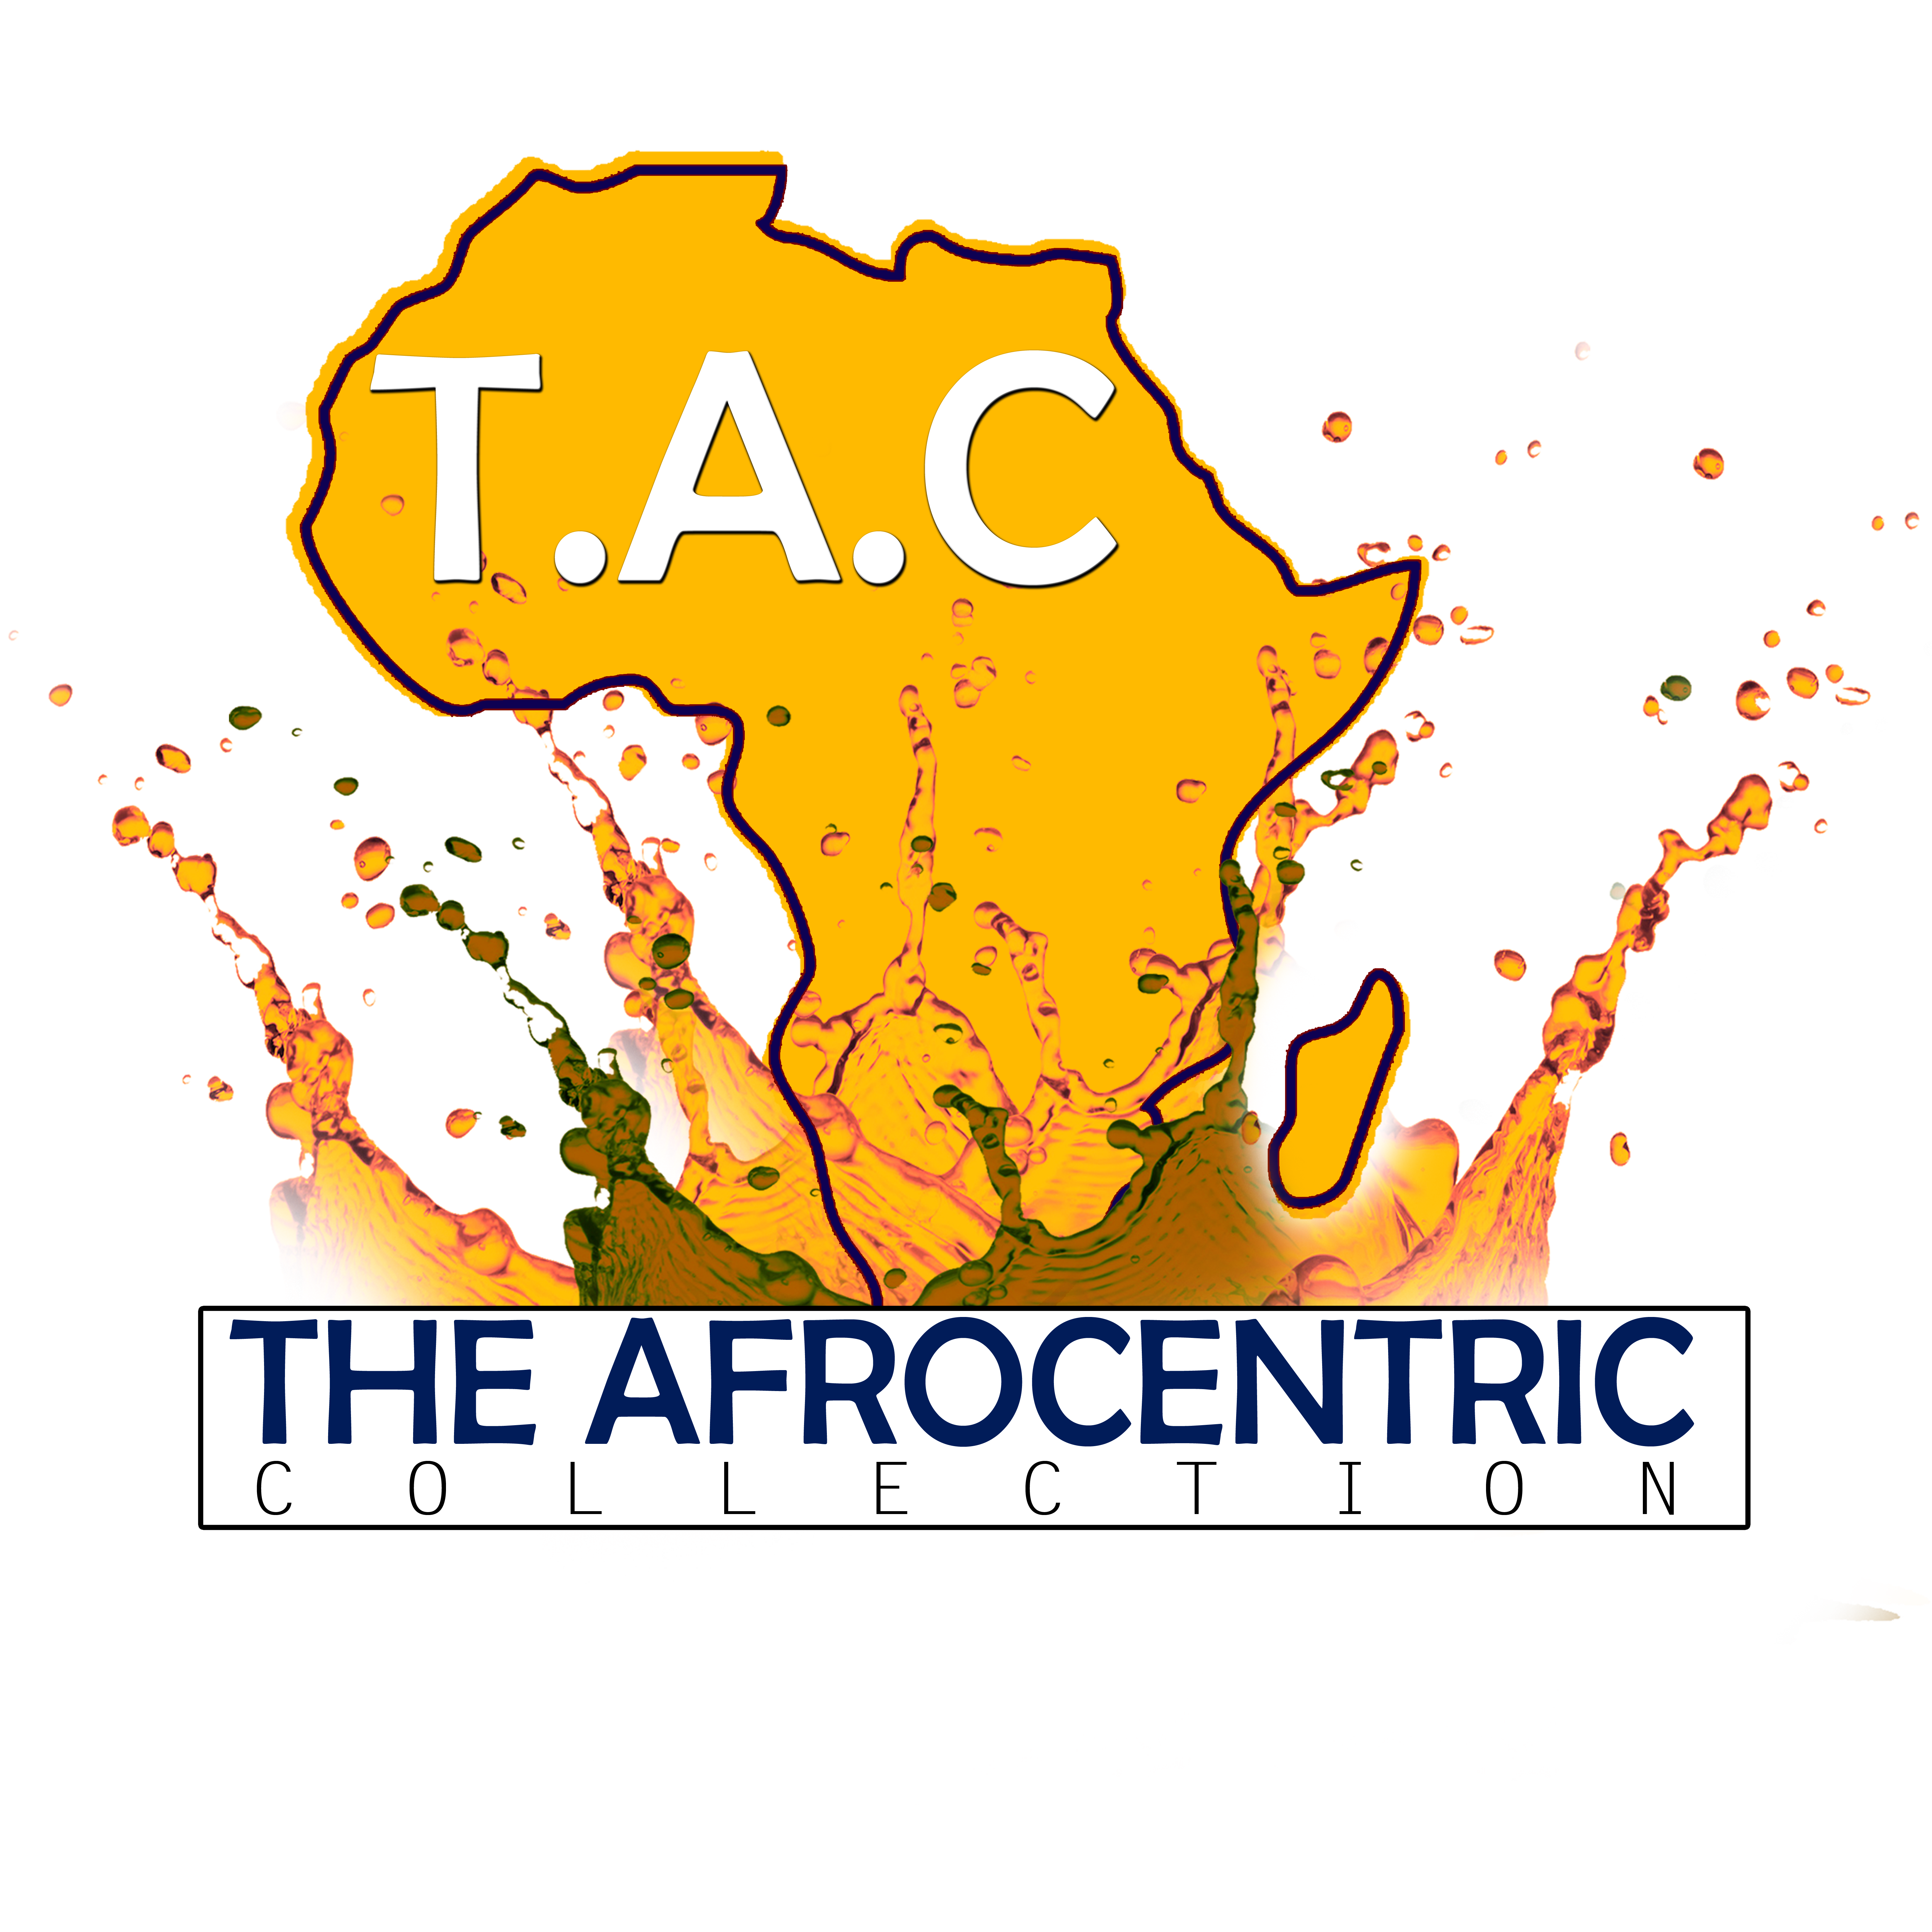 THE AFROCEMTRIC COLLECTION LOGO RESIZED W